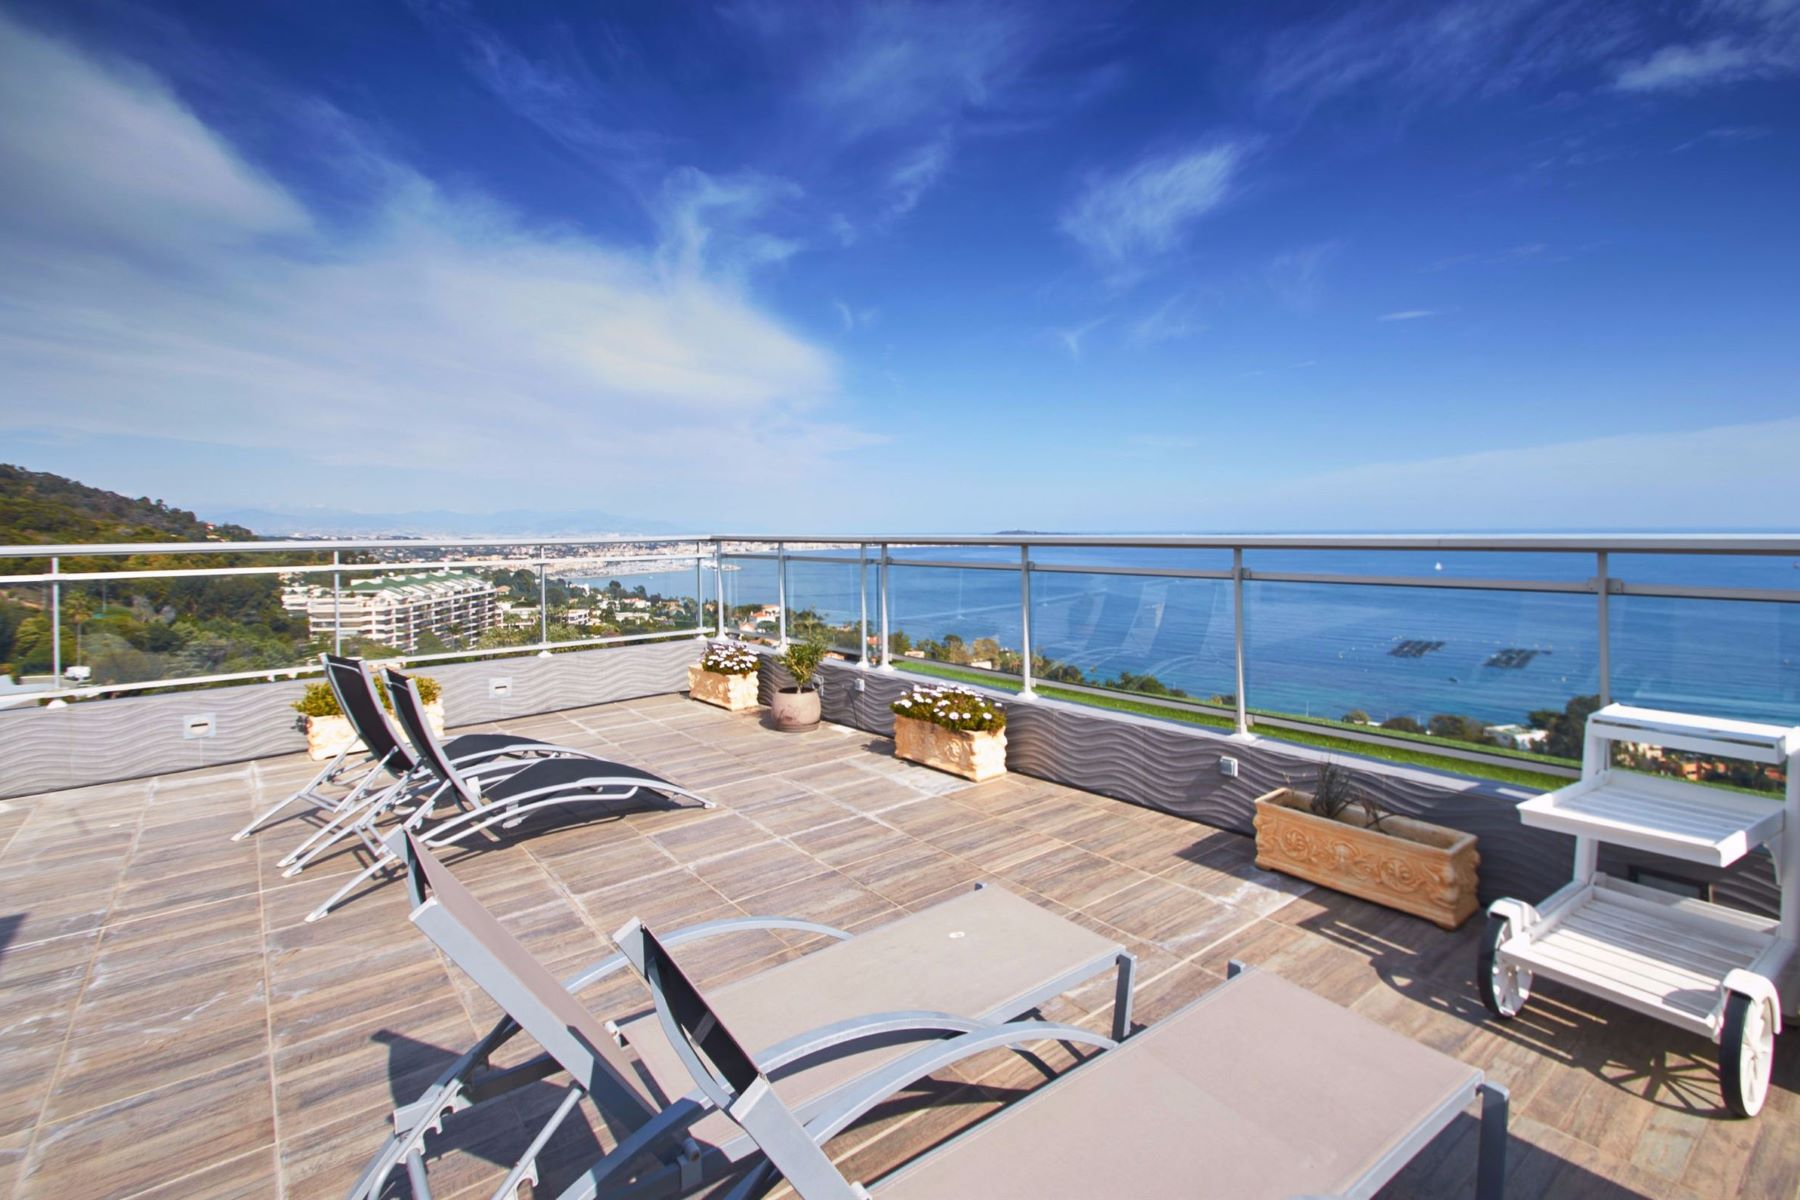 Property for Sale at Penthouse in a high-end condominium in La Californie, Cannes Cannes, Provence-Alpes-Cote D'Azur 06400 France